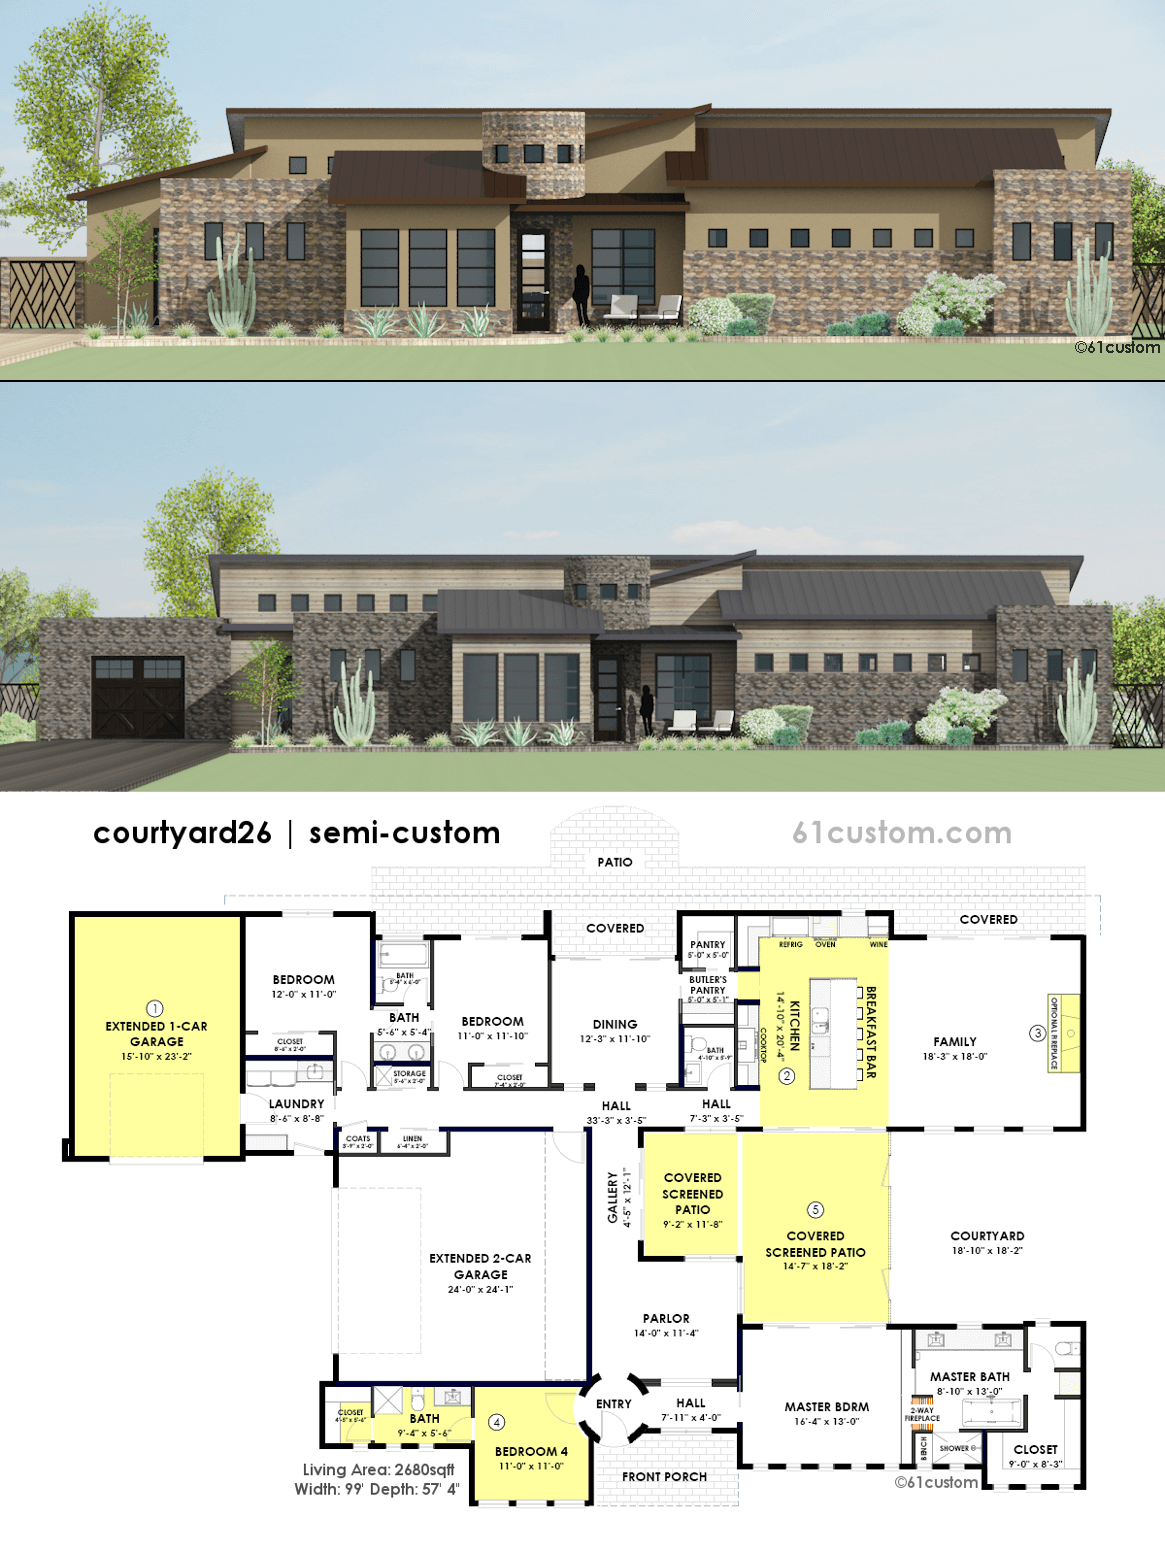 Contemporary side courtyard house plan 61custom for Custom home blueprints